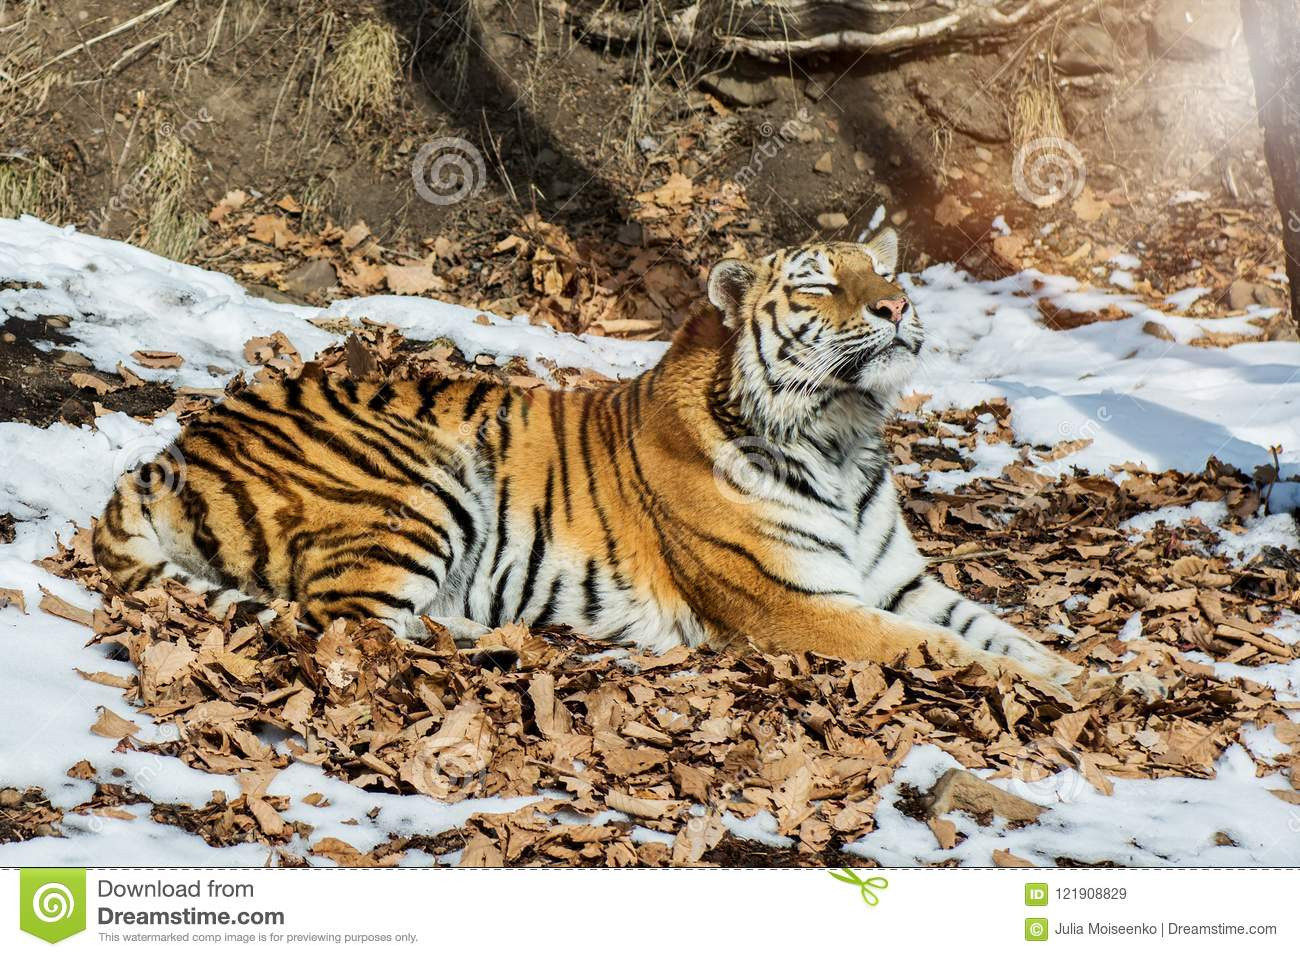 Big tiger in the snow, the beautiful, wild, striped cat, in open Woods, looking directly at us.